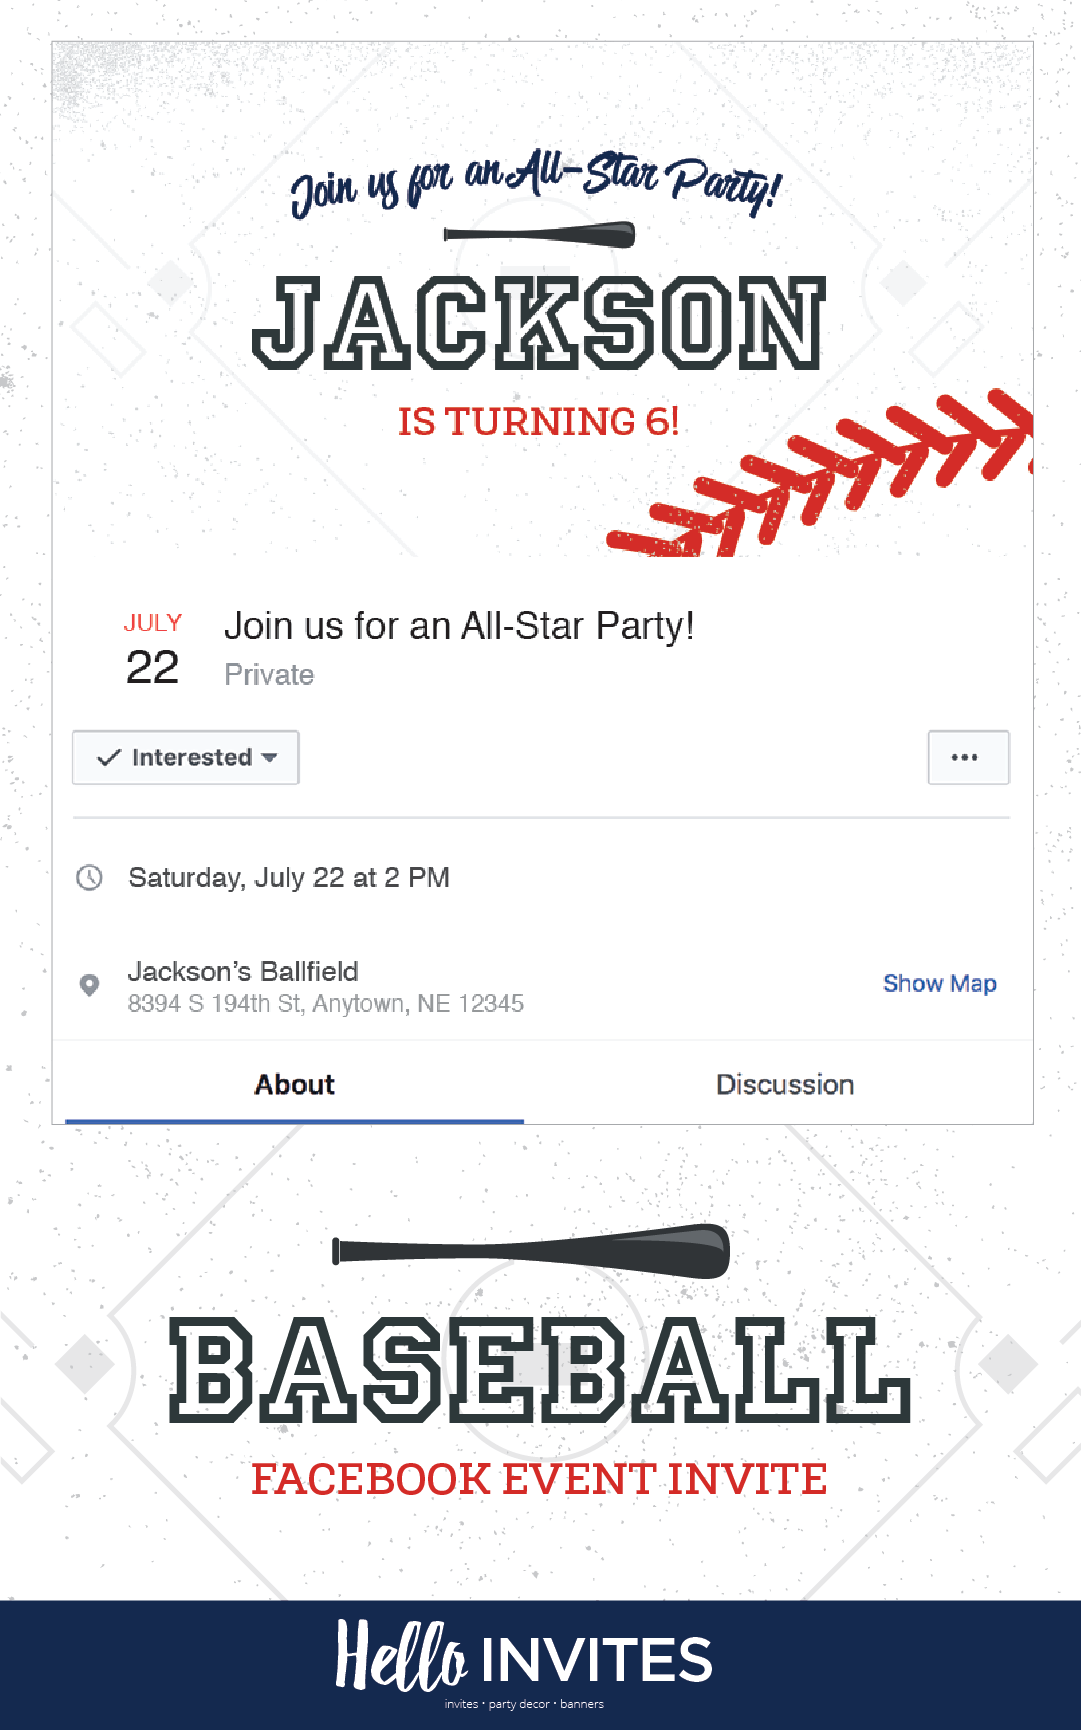 Baseball Birthday Facebook Event Invitation Red Blue Boy Invite Bat Field Digital Printable